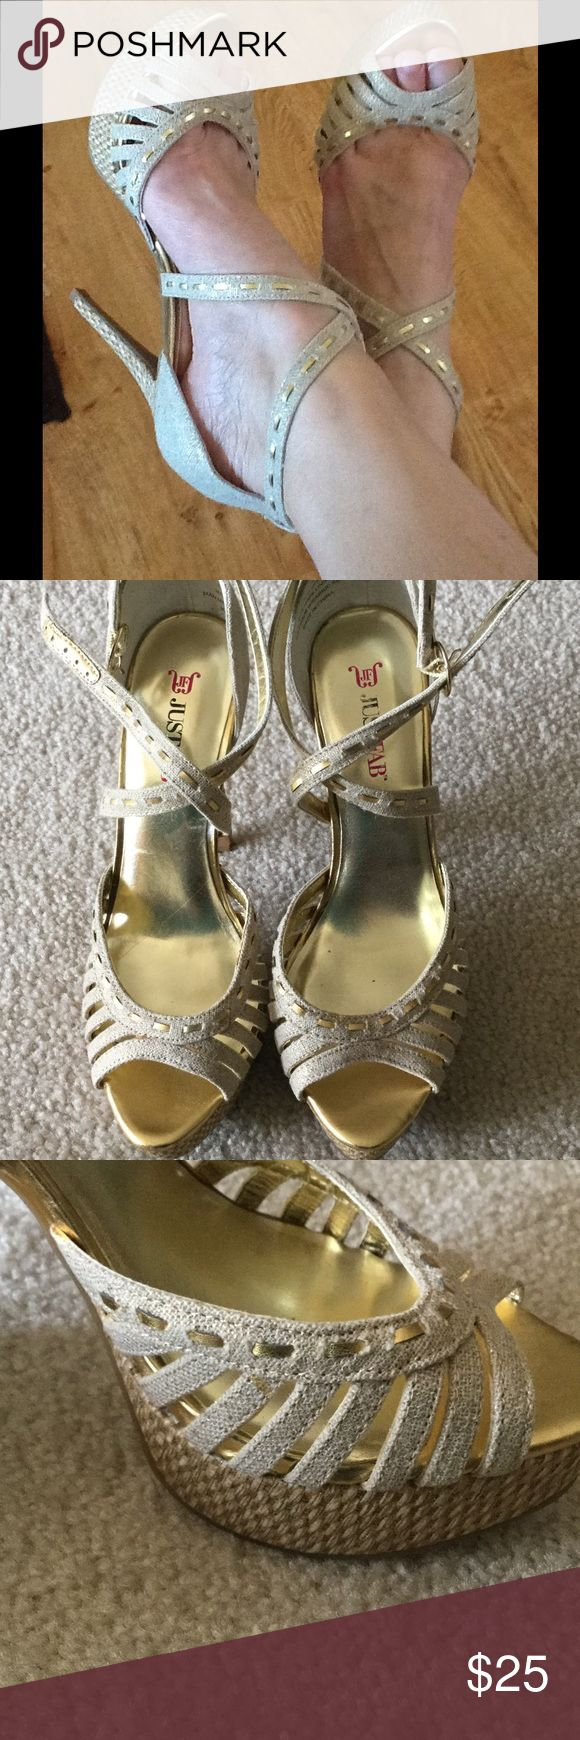 """Neutral heeled Sandals Done with gold thread accents, size 7.5, TTS, heel 5.25"""" JustFab Shoes Heels"""